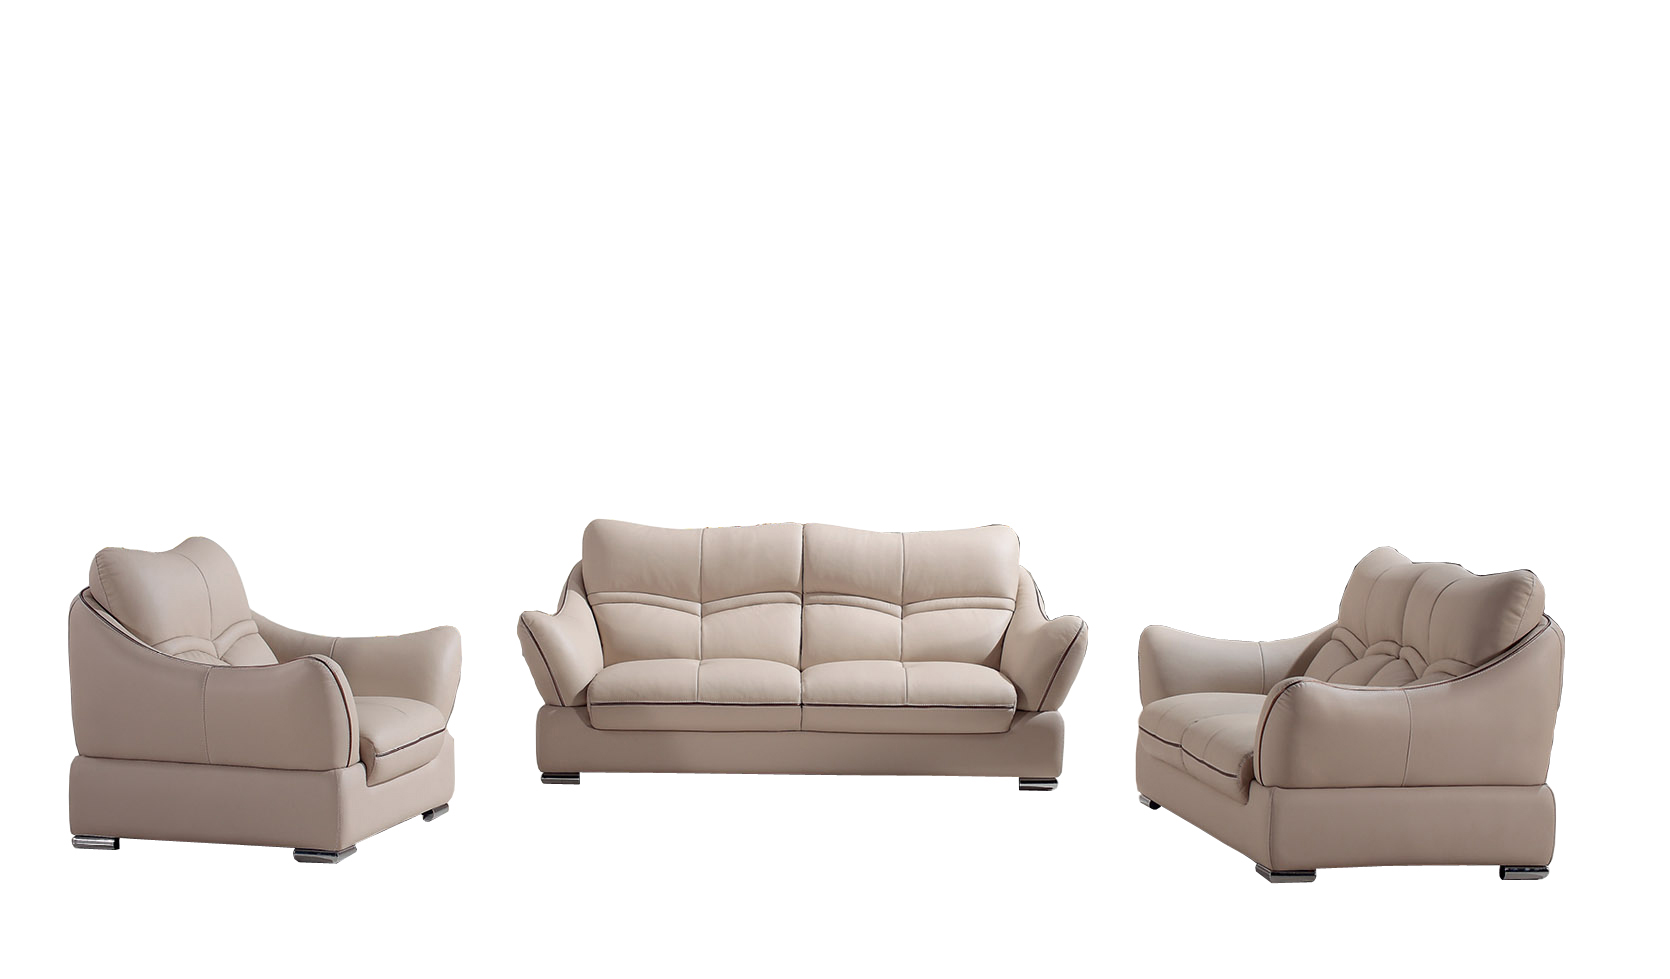 Fashionable Genuine Modern Leather Sofa Made in China